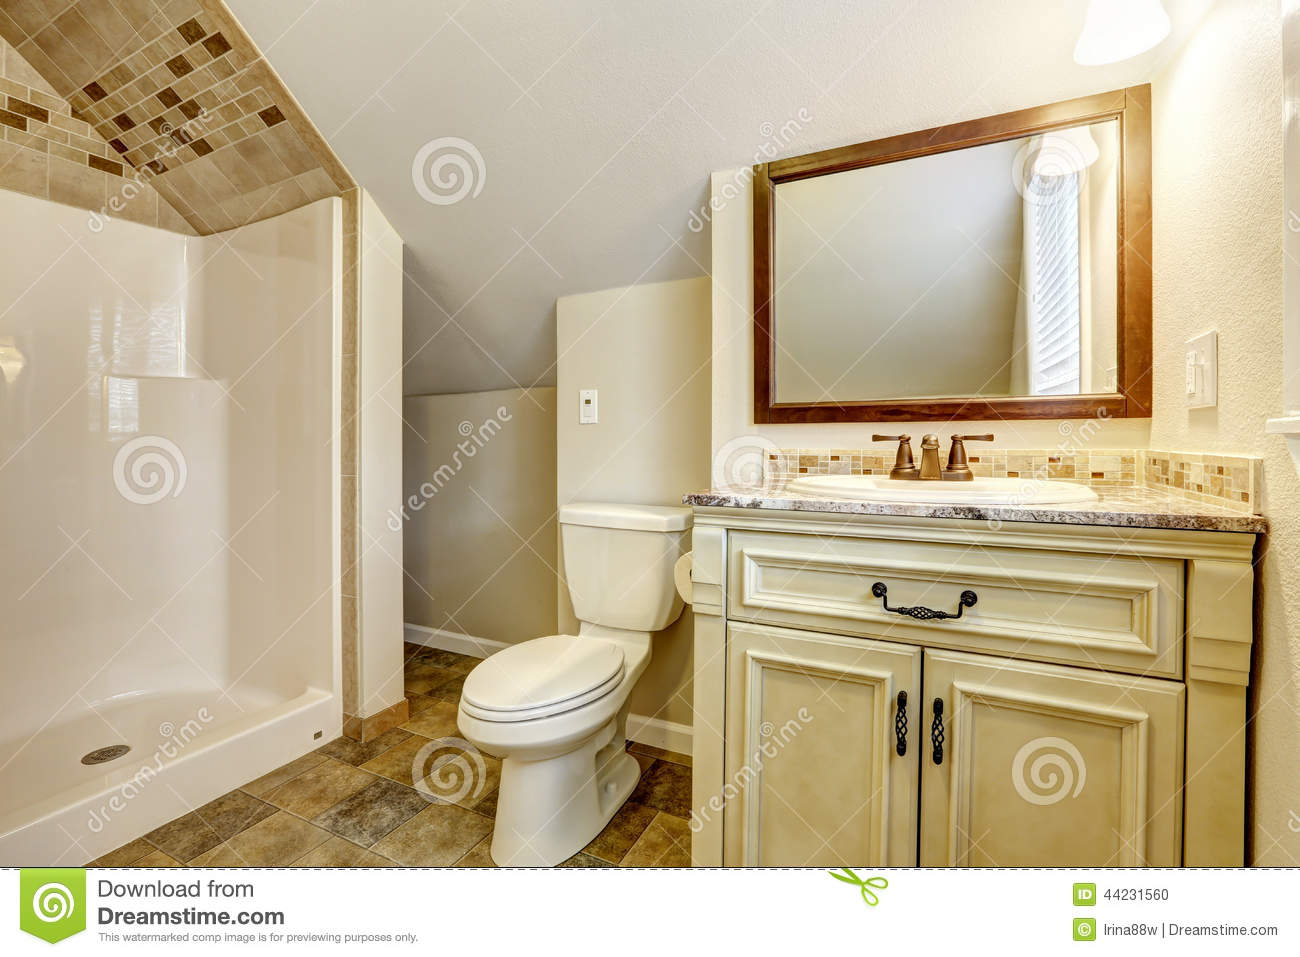 Bathroom With Vaulted Ceiling Vanity Cabinet And Mirror Stock Photo Image Of Building